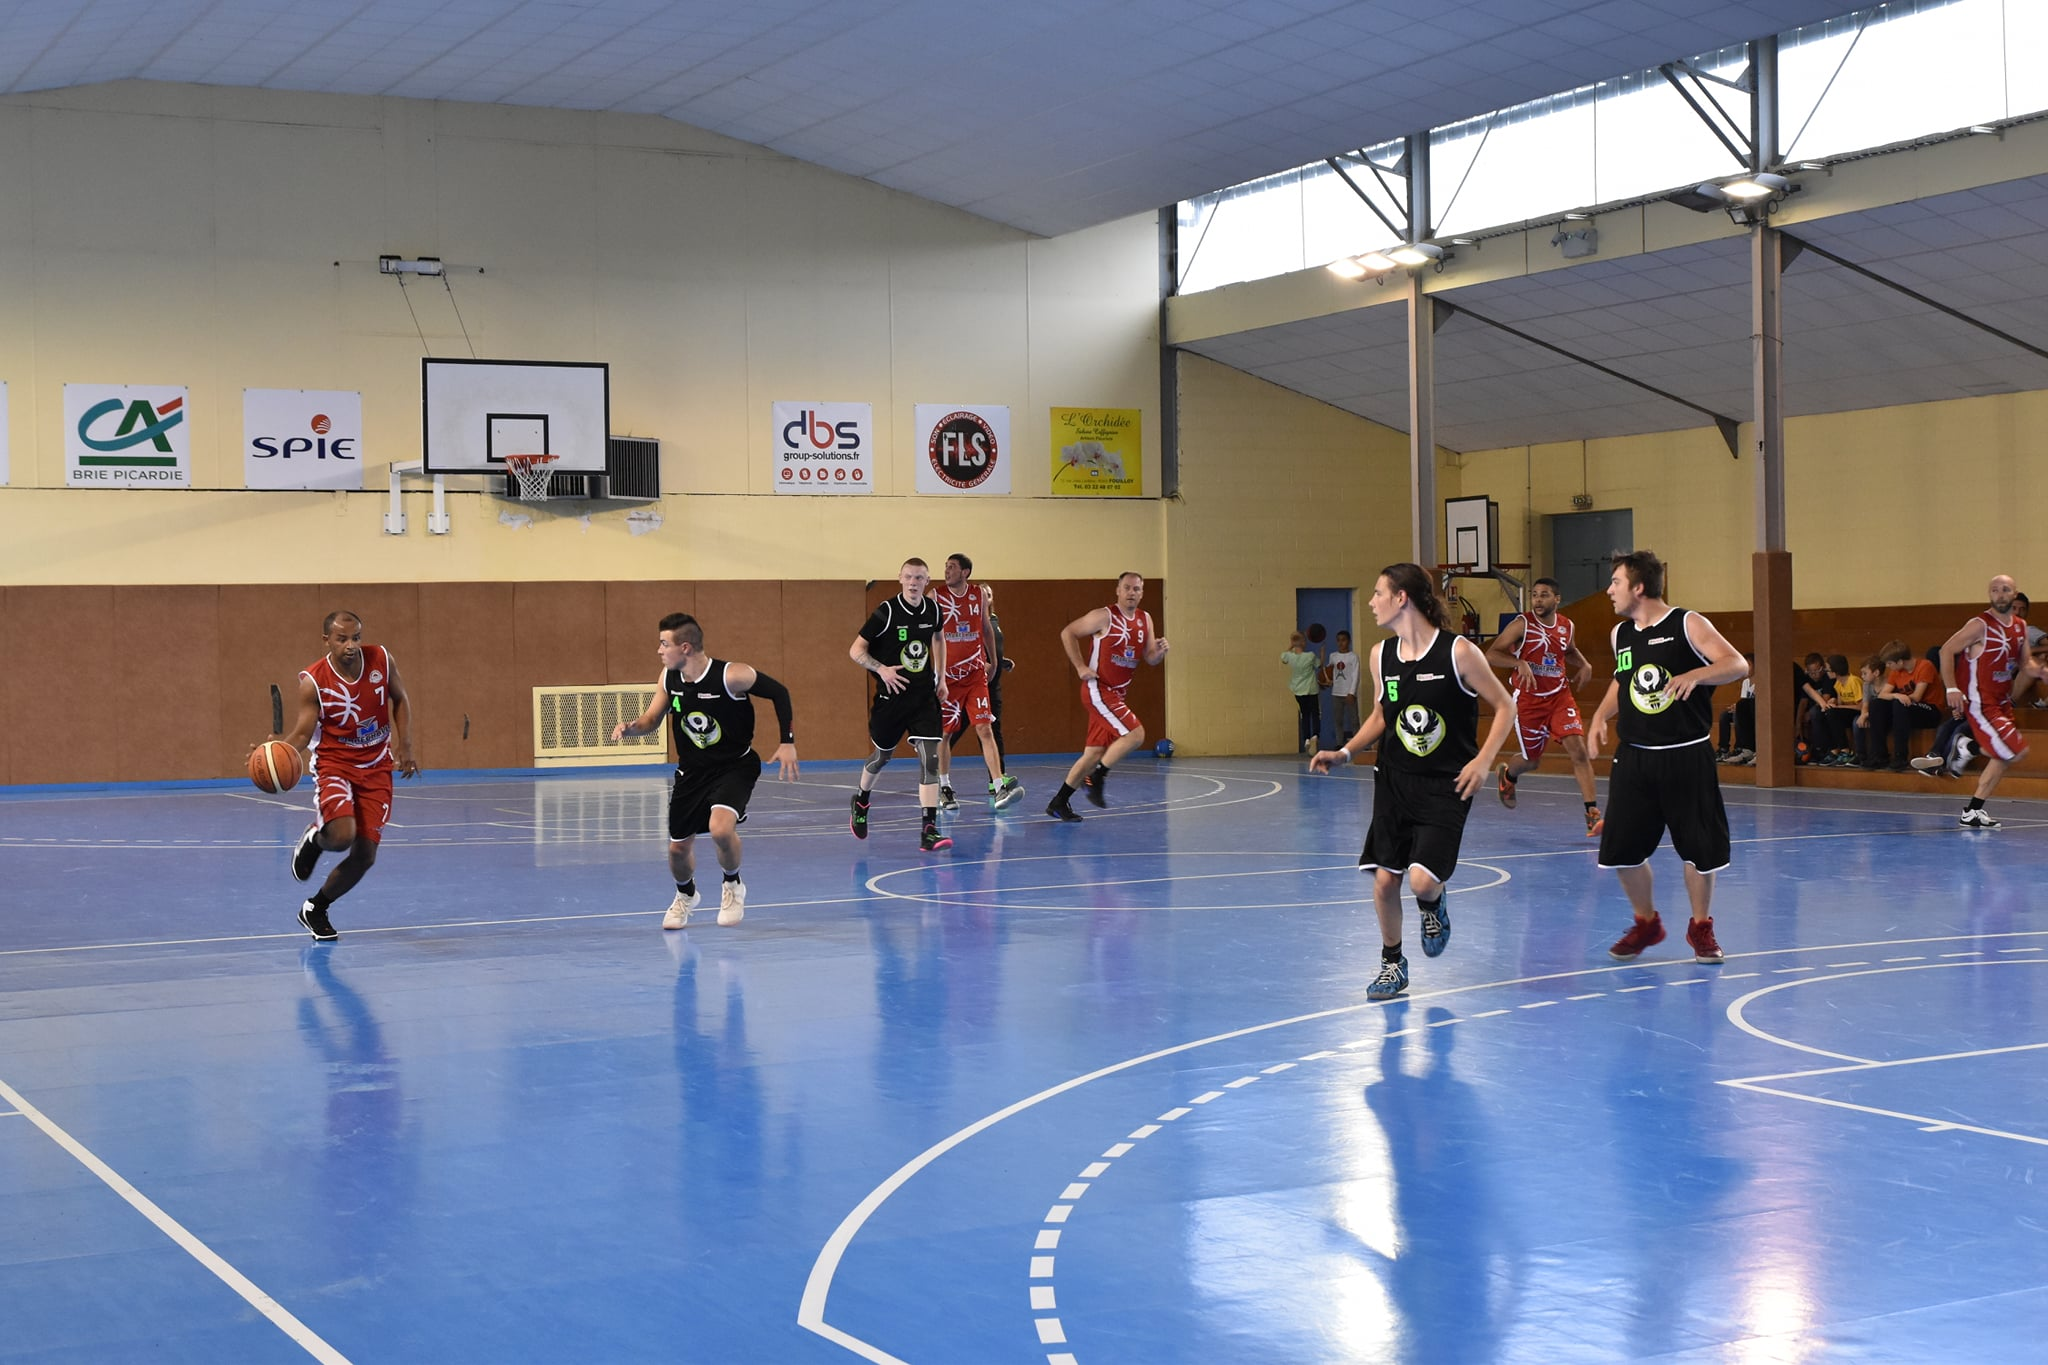 US Boves Basket-Ball